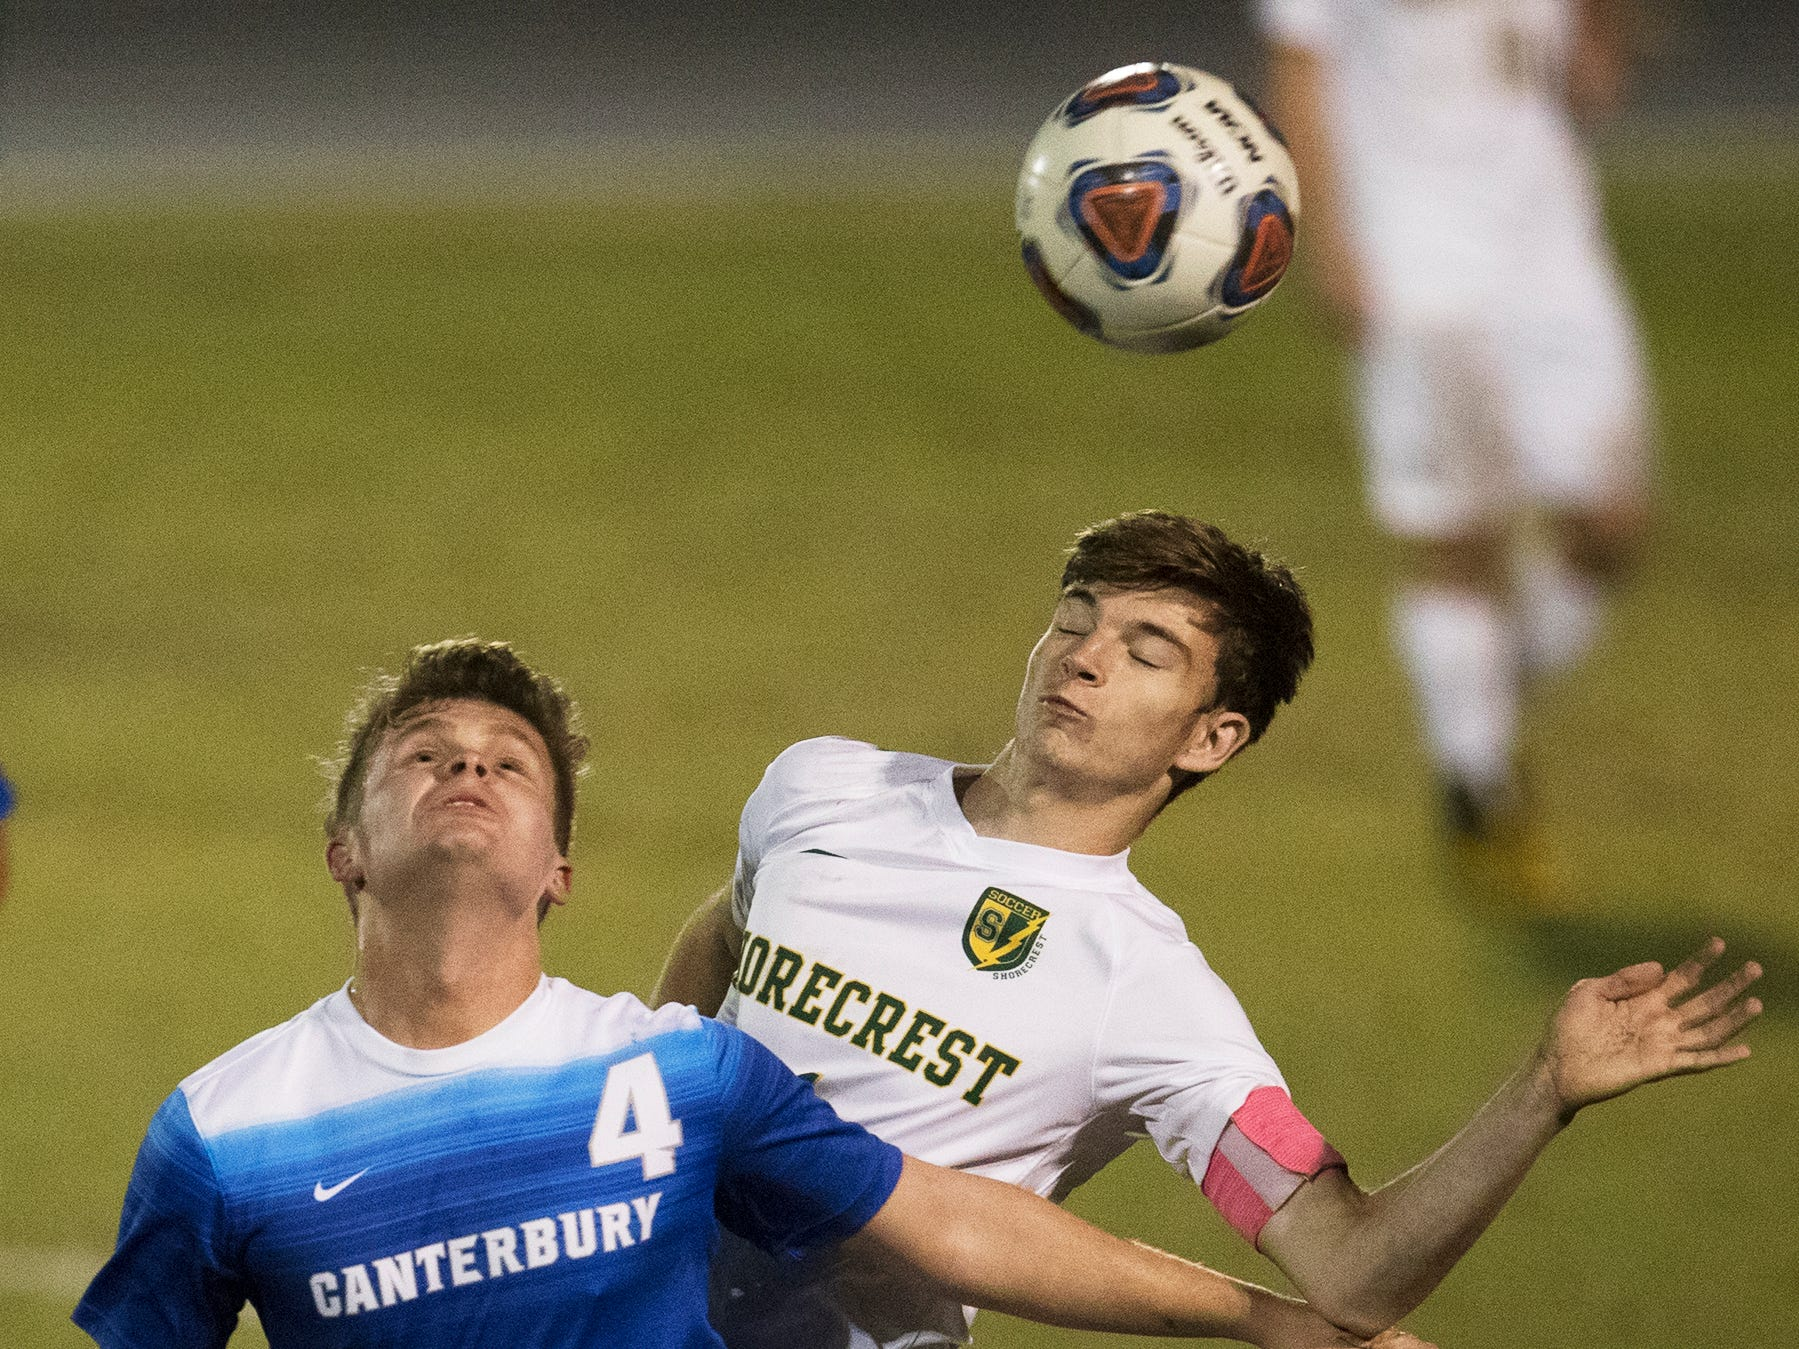 Game action between Canterbury School and Shorecrest on Wednesday in the Class 1A regional soccer final at Canterbury in Fort Myers. Shorecrest beat Canterbury 3-2.